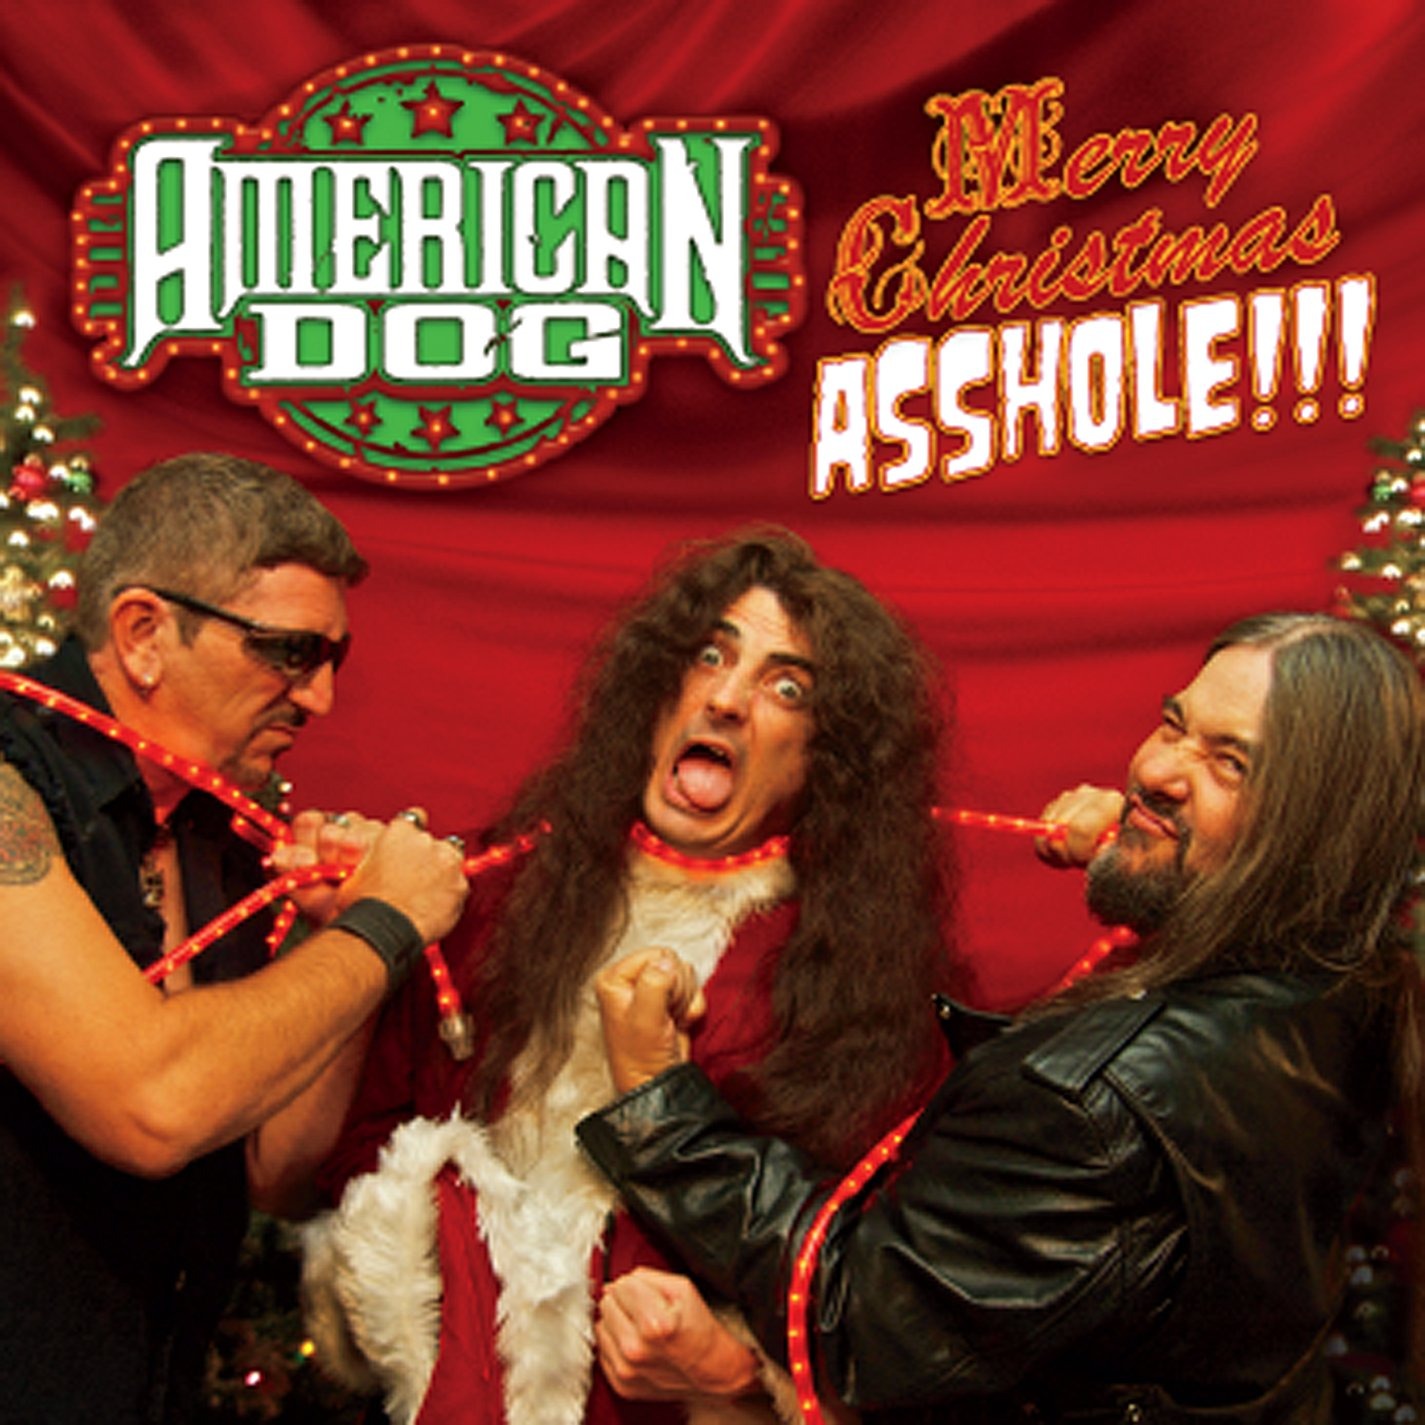 Merry Christmas Asshole: Live: Amazon.co.uk: Music